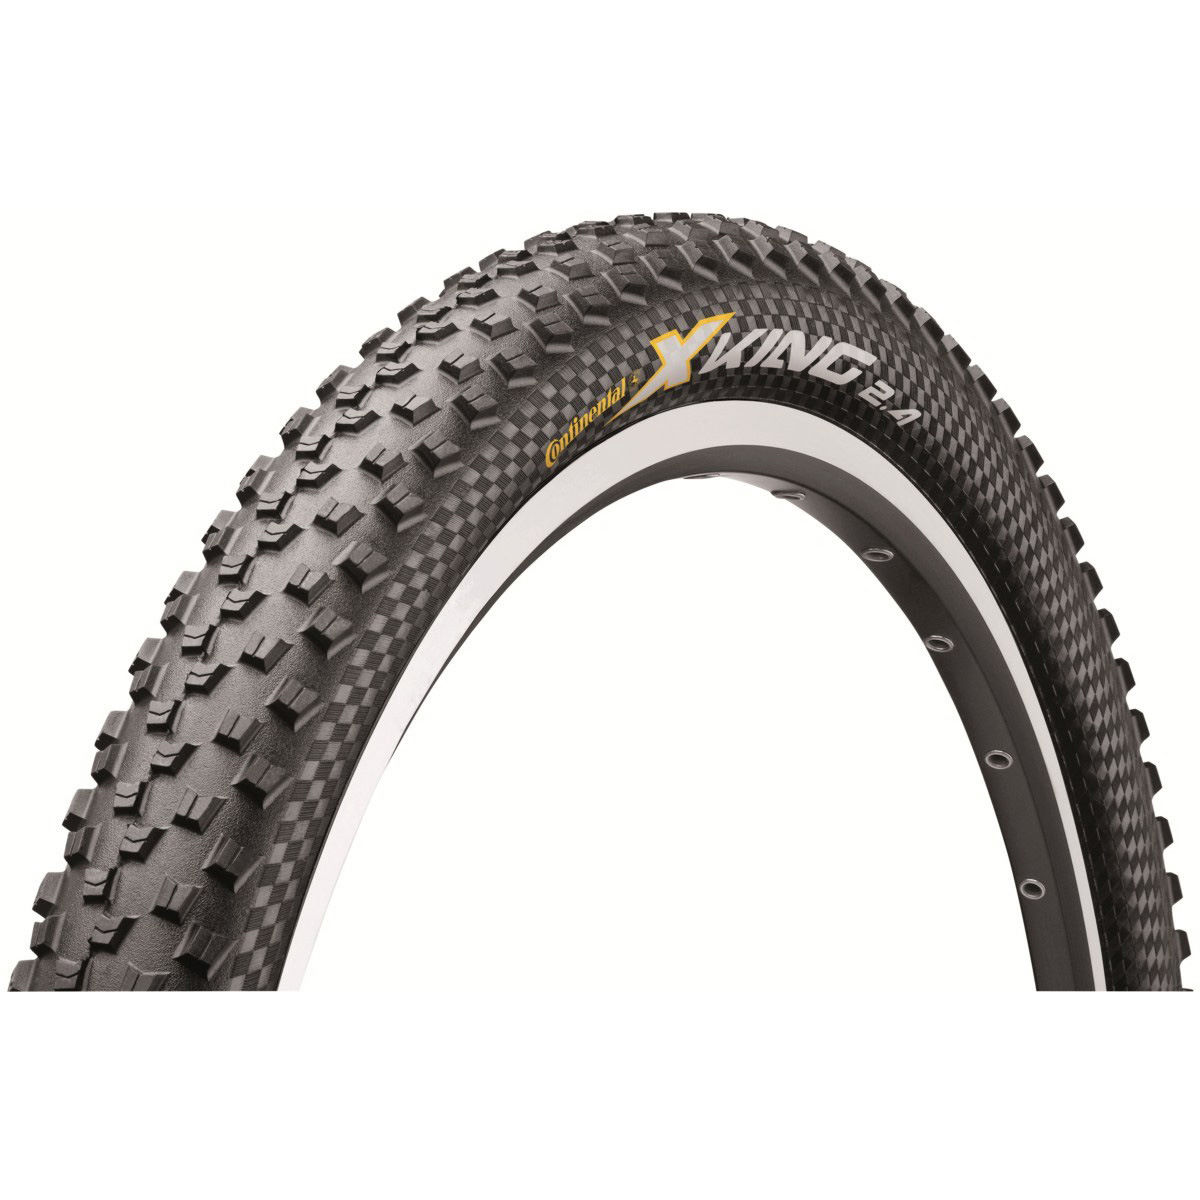 Pneu VTT Continental X King ProTection (souple) - 26 x 2.4 Noir Pneus VTT